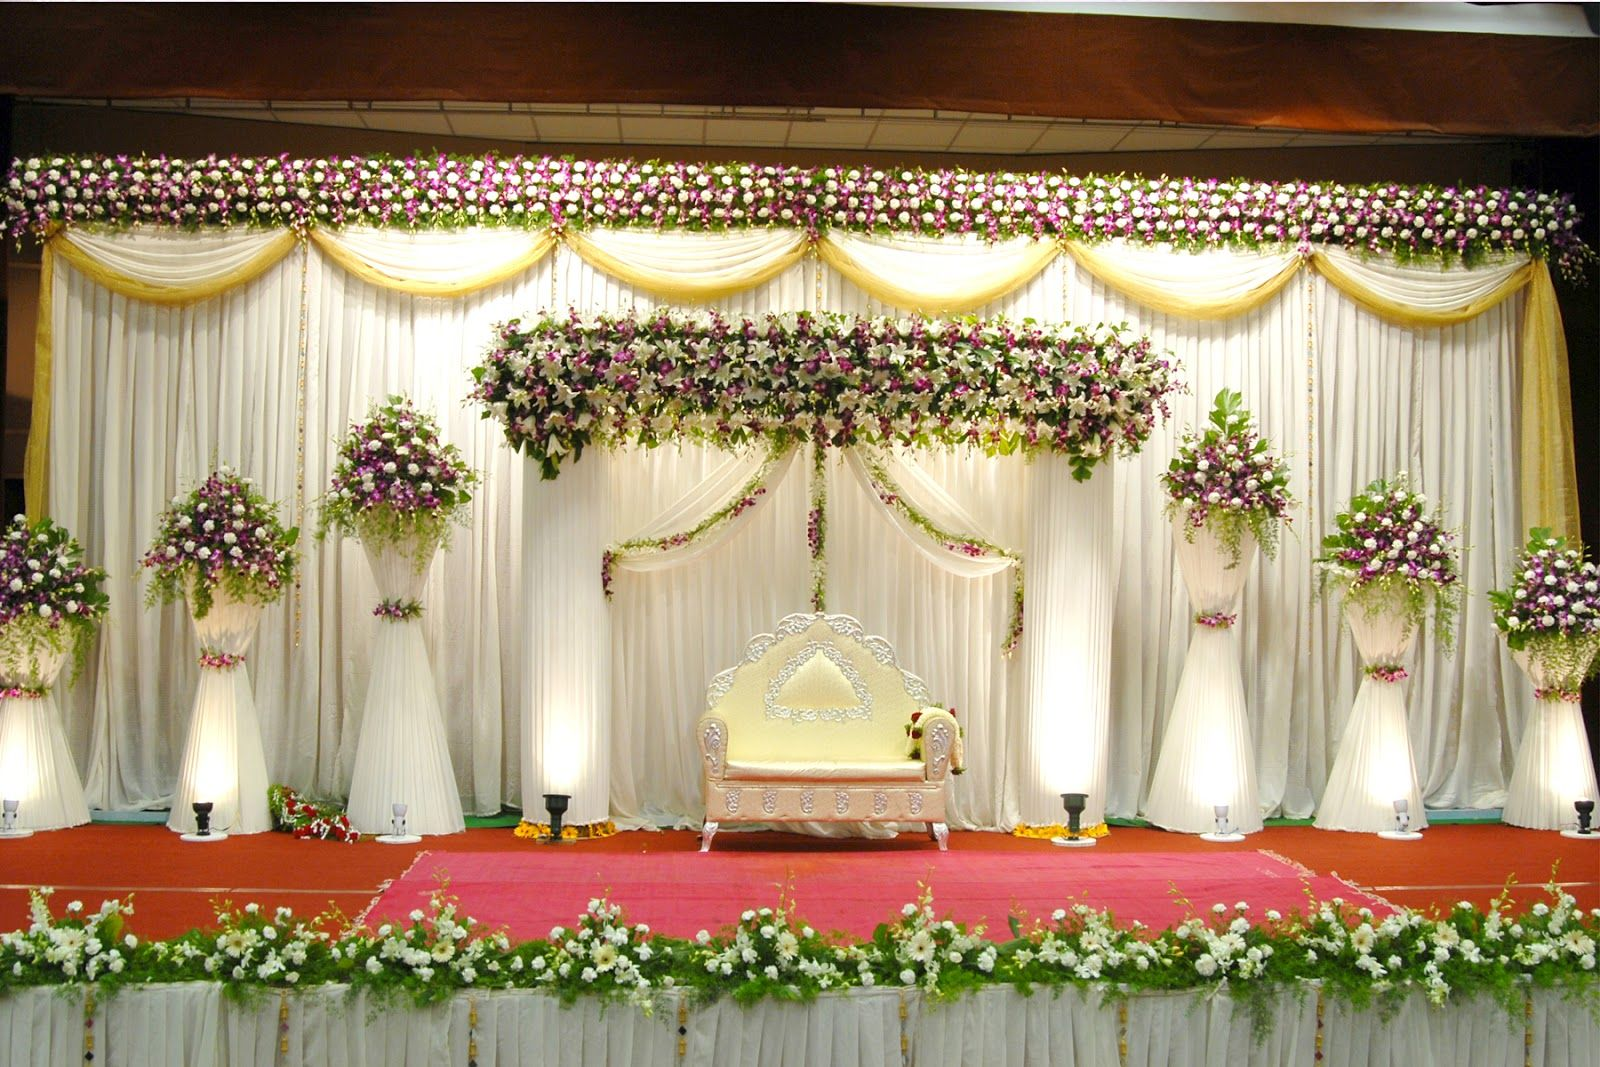 Stage decoration marriage decoration photos 2013 marriage stage stage decoration marriage decoration photos 2013 marriage stage decoration ideas 2014 junglespirit Choice Image